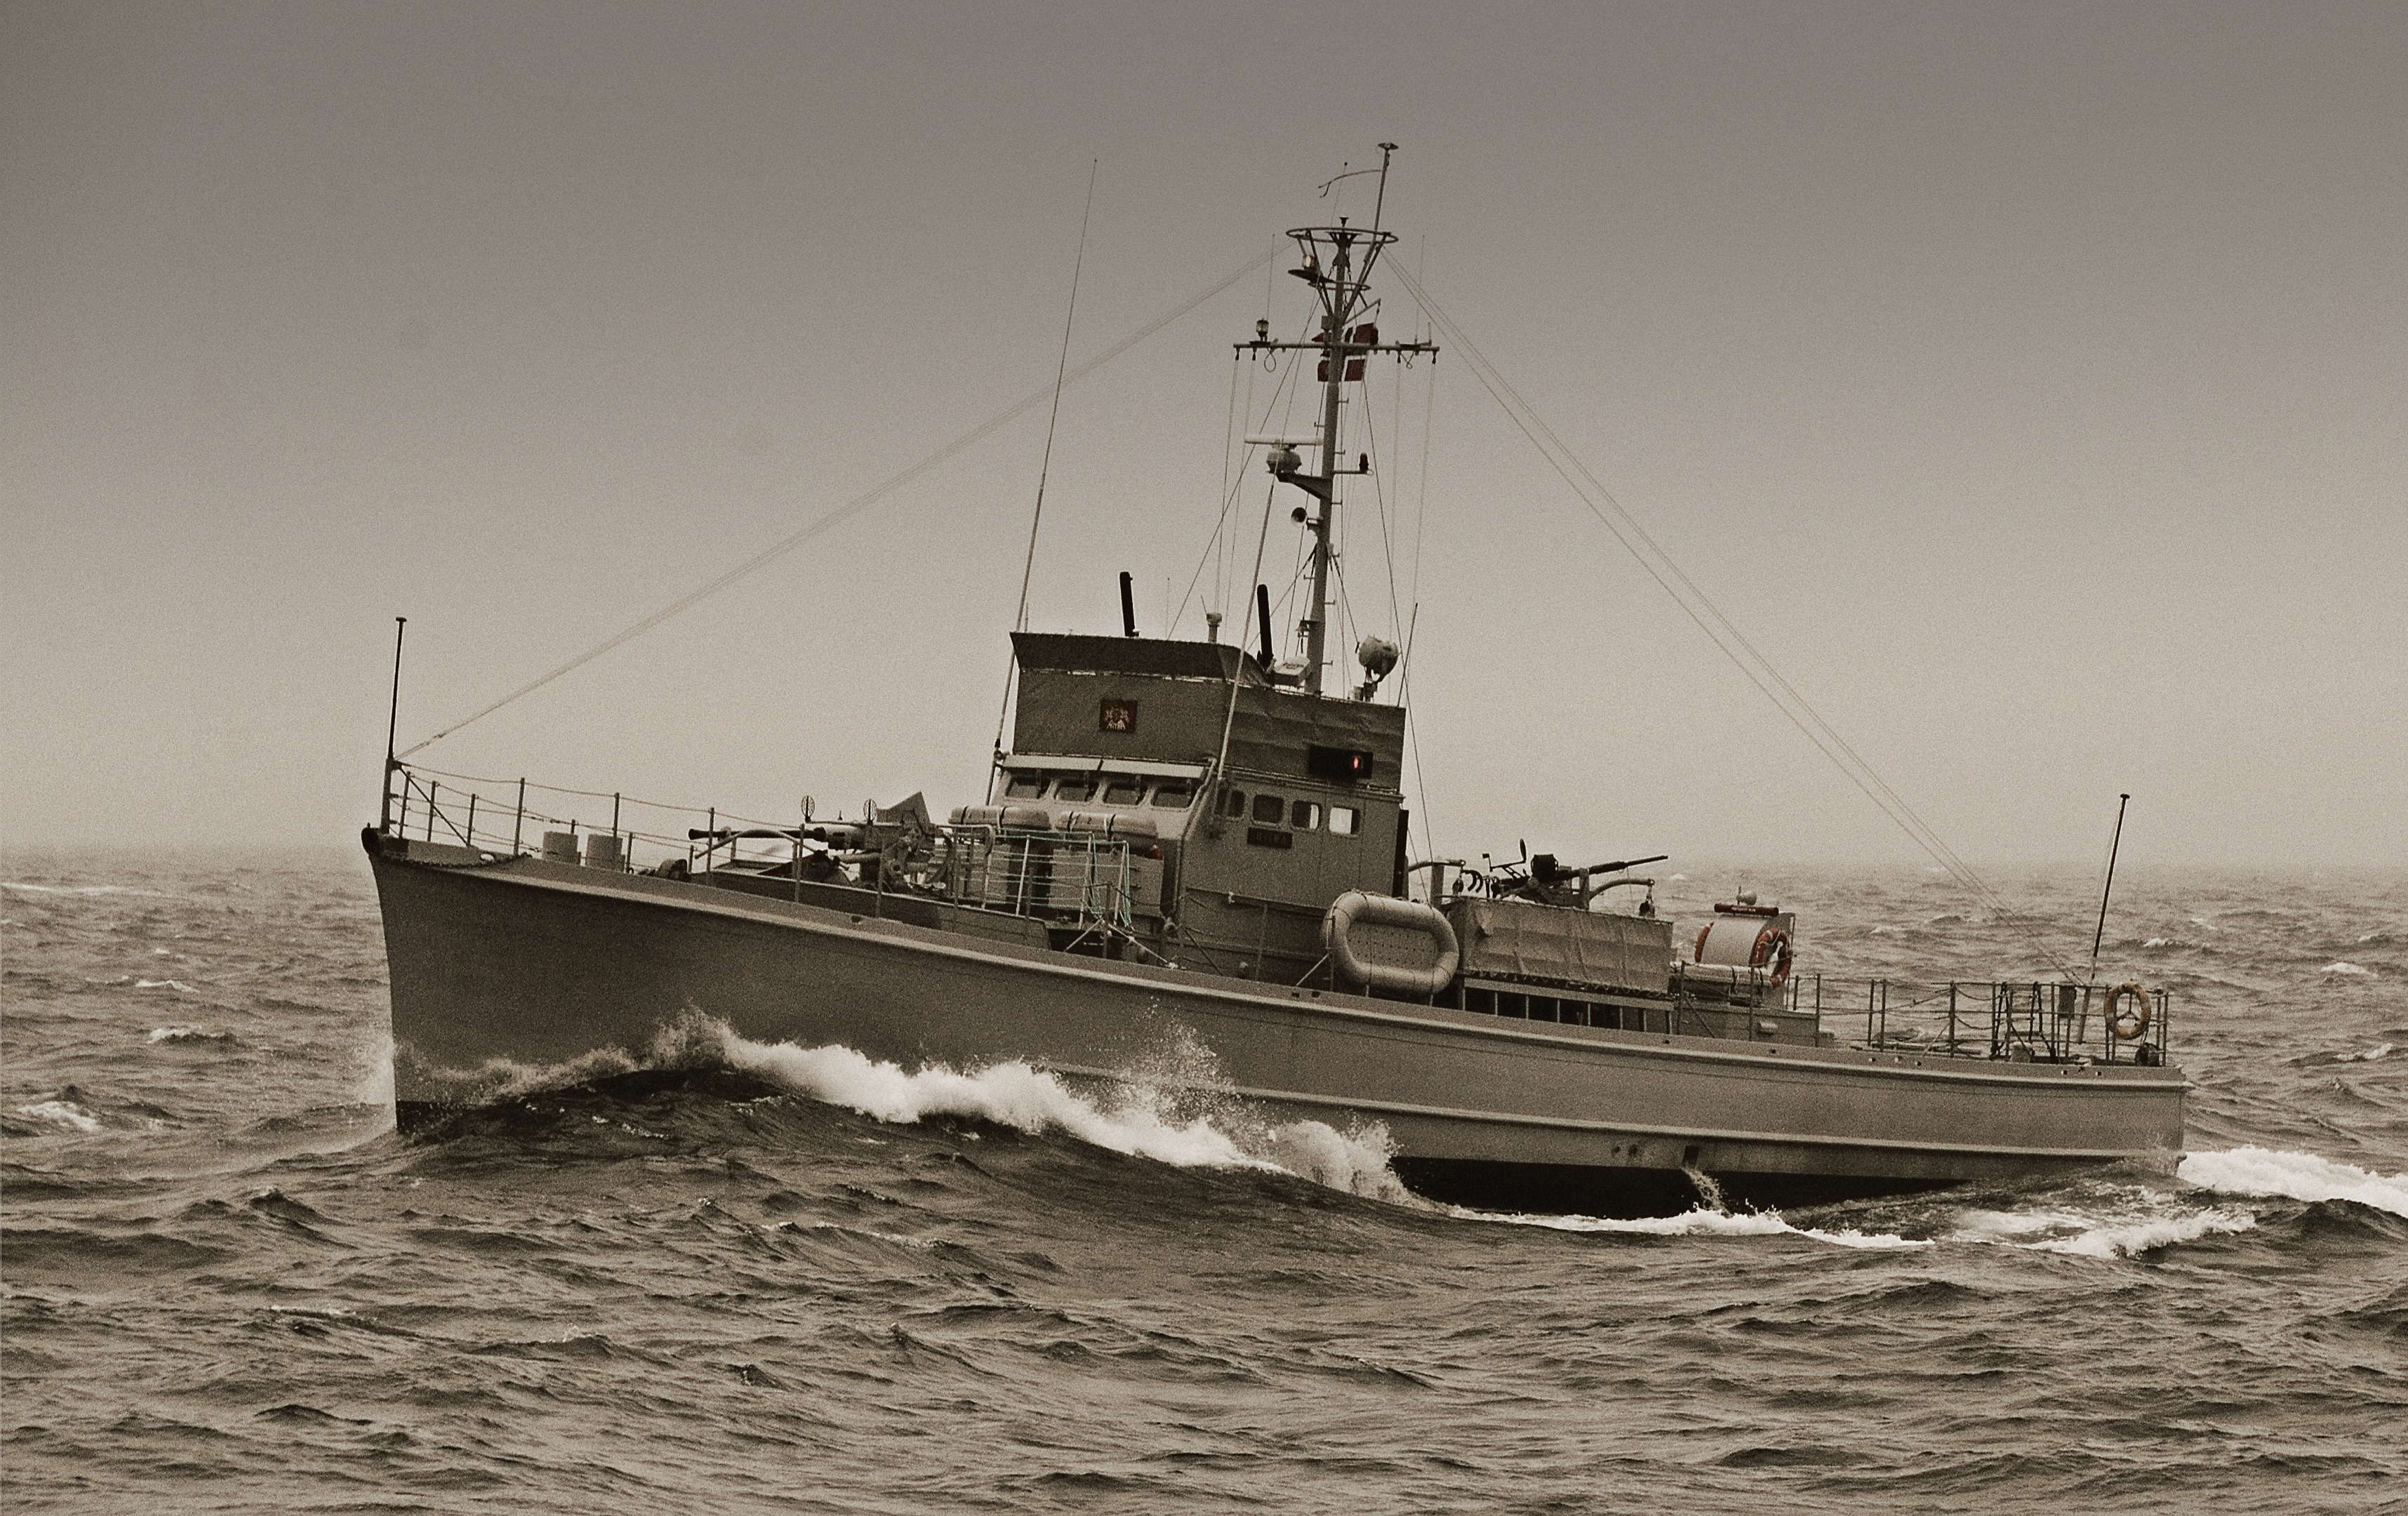 The sub-schase Hitra is one of the historic vessels which will be travelling from Norway to Scalloway in Shetland.